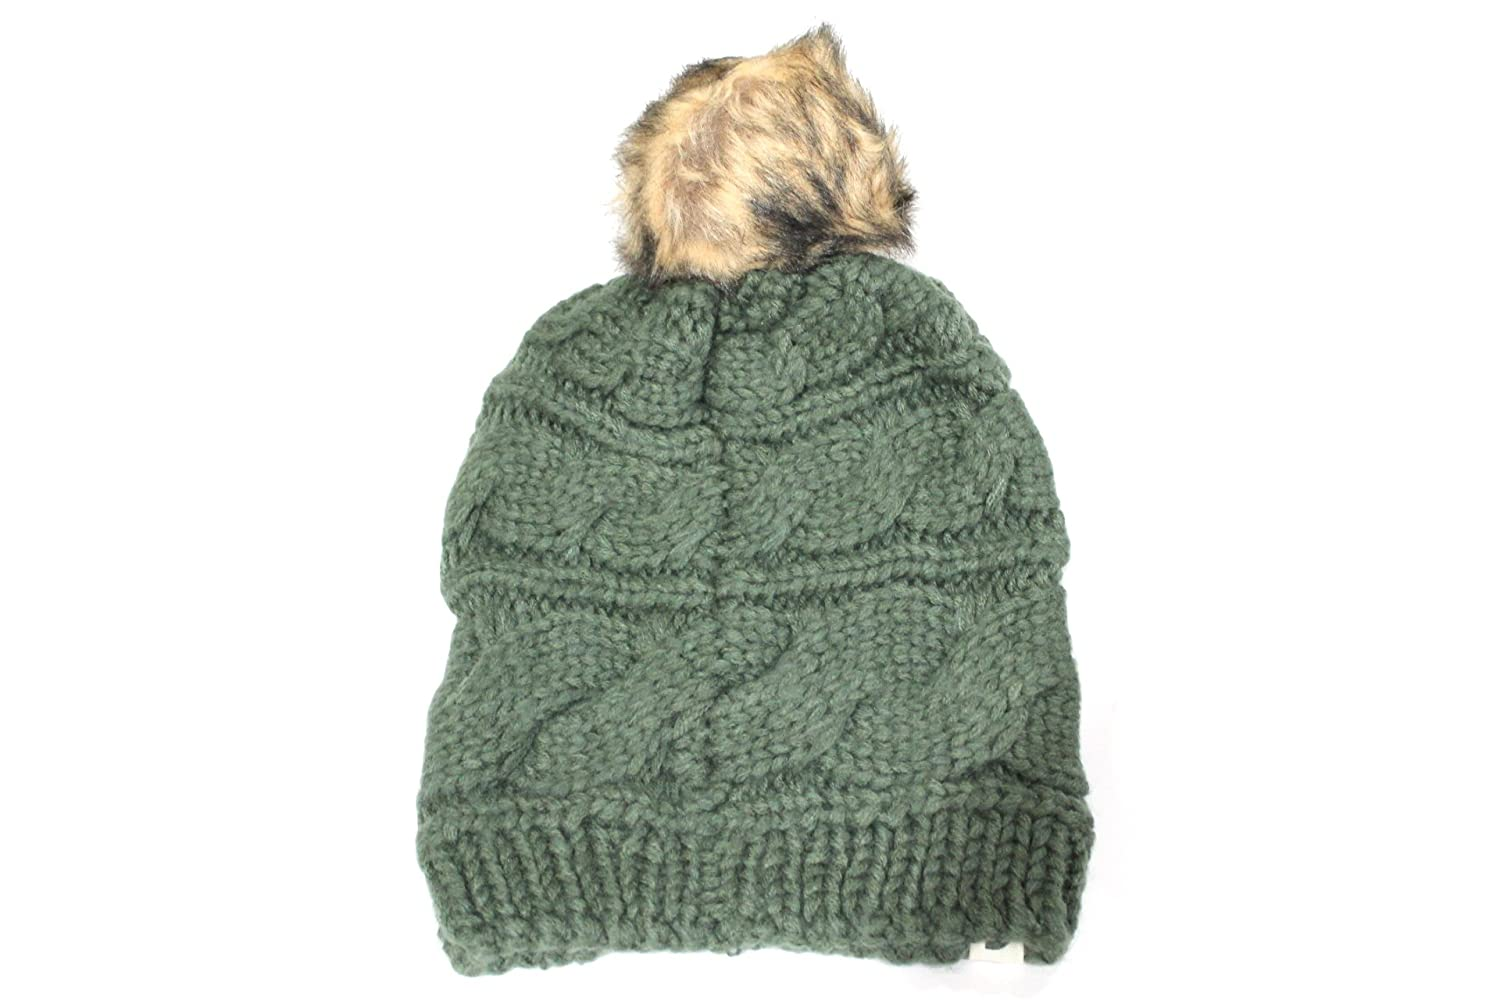 8979cea19 Amazon.com: The North Face Womens Cable Knit Faux Fure Beanie Hat ...